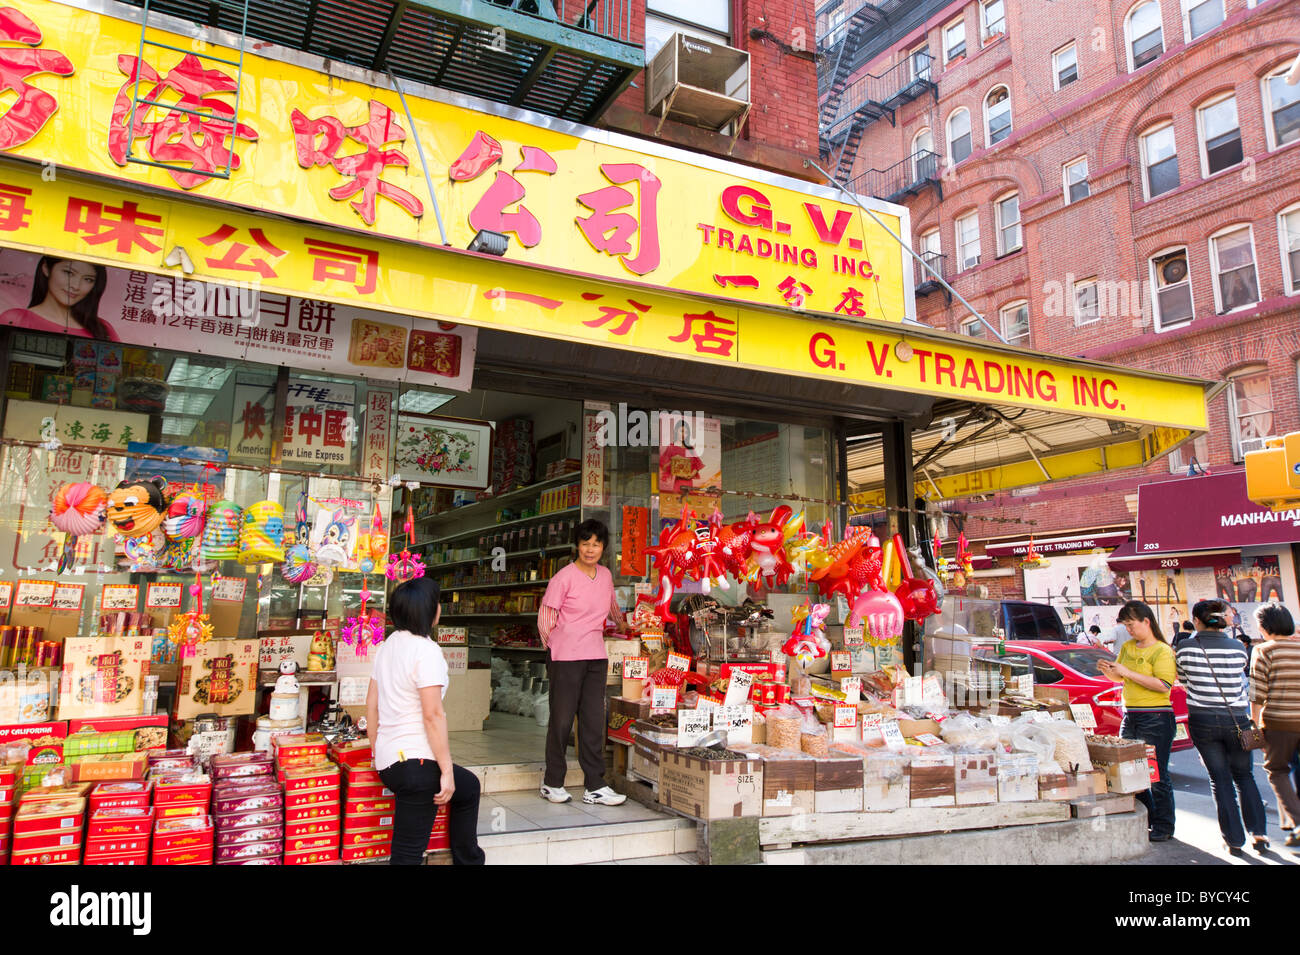 General store in Chinatown, New York City, USA - Stock Image